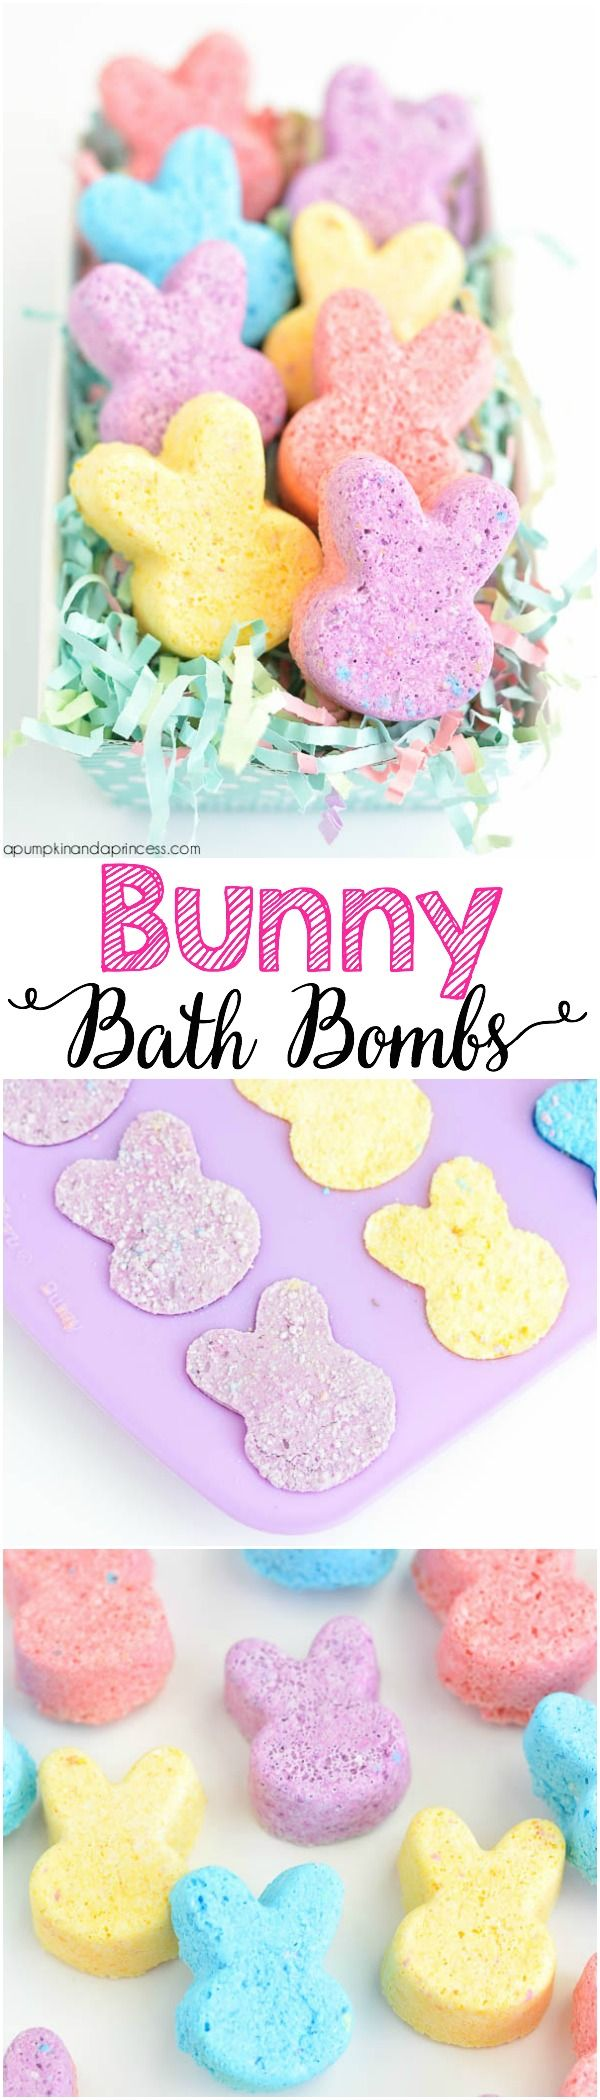 DIY Bunny Bath Bombs from A Pumpkin and A Princess